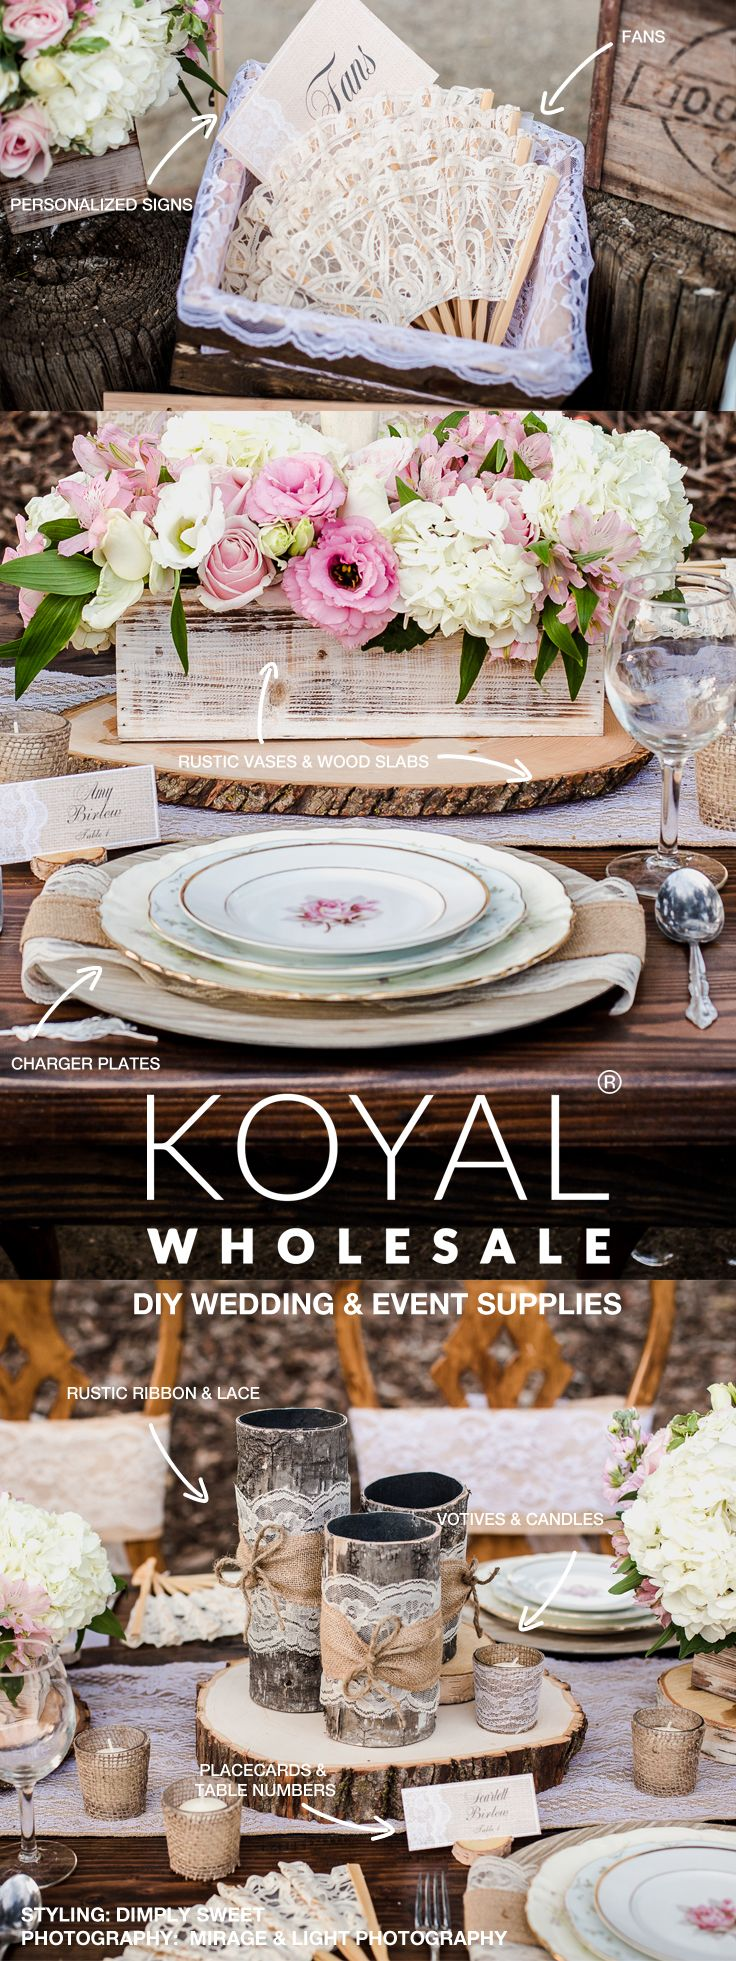 Wholesale rustic wedding supplies event centerpieces and floral wholesale rustic wedding supplies event centerpieces and floral decorations on sale free shipping on 99 koyal wholesale is the destination for diy brides junglespirit Choice Image